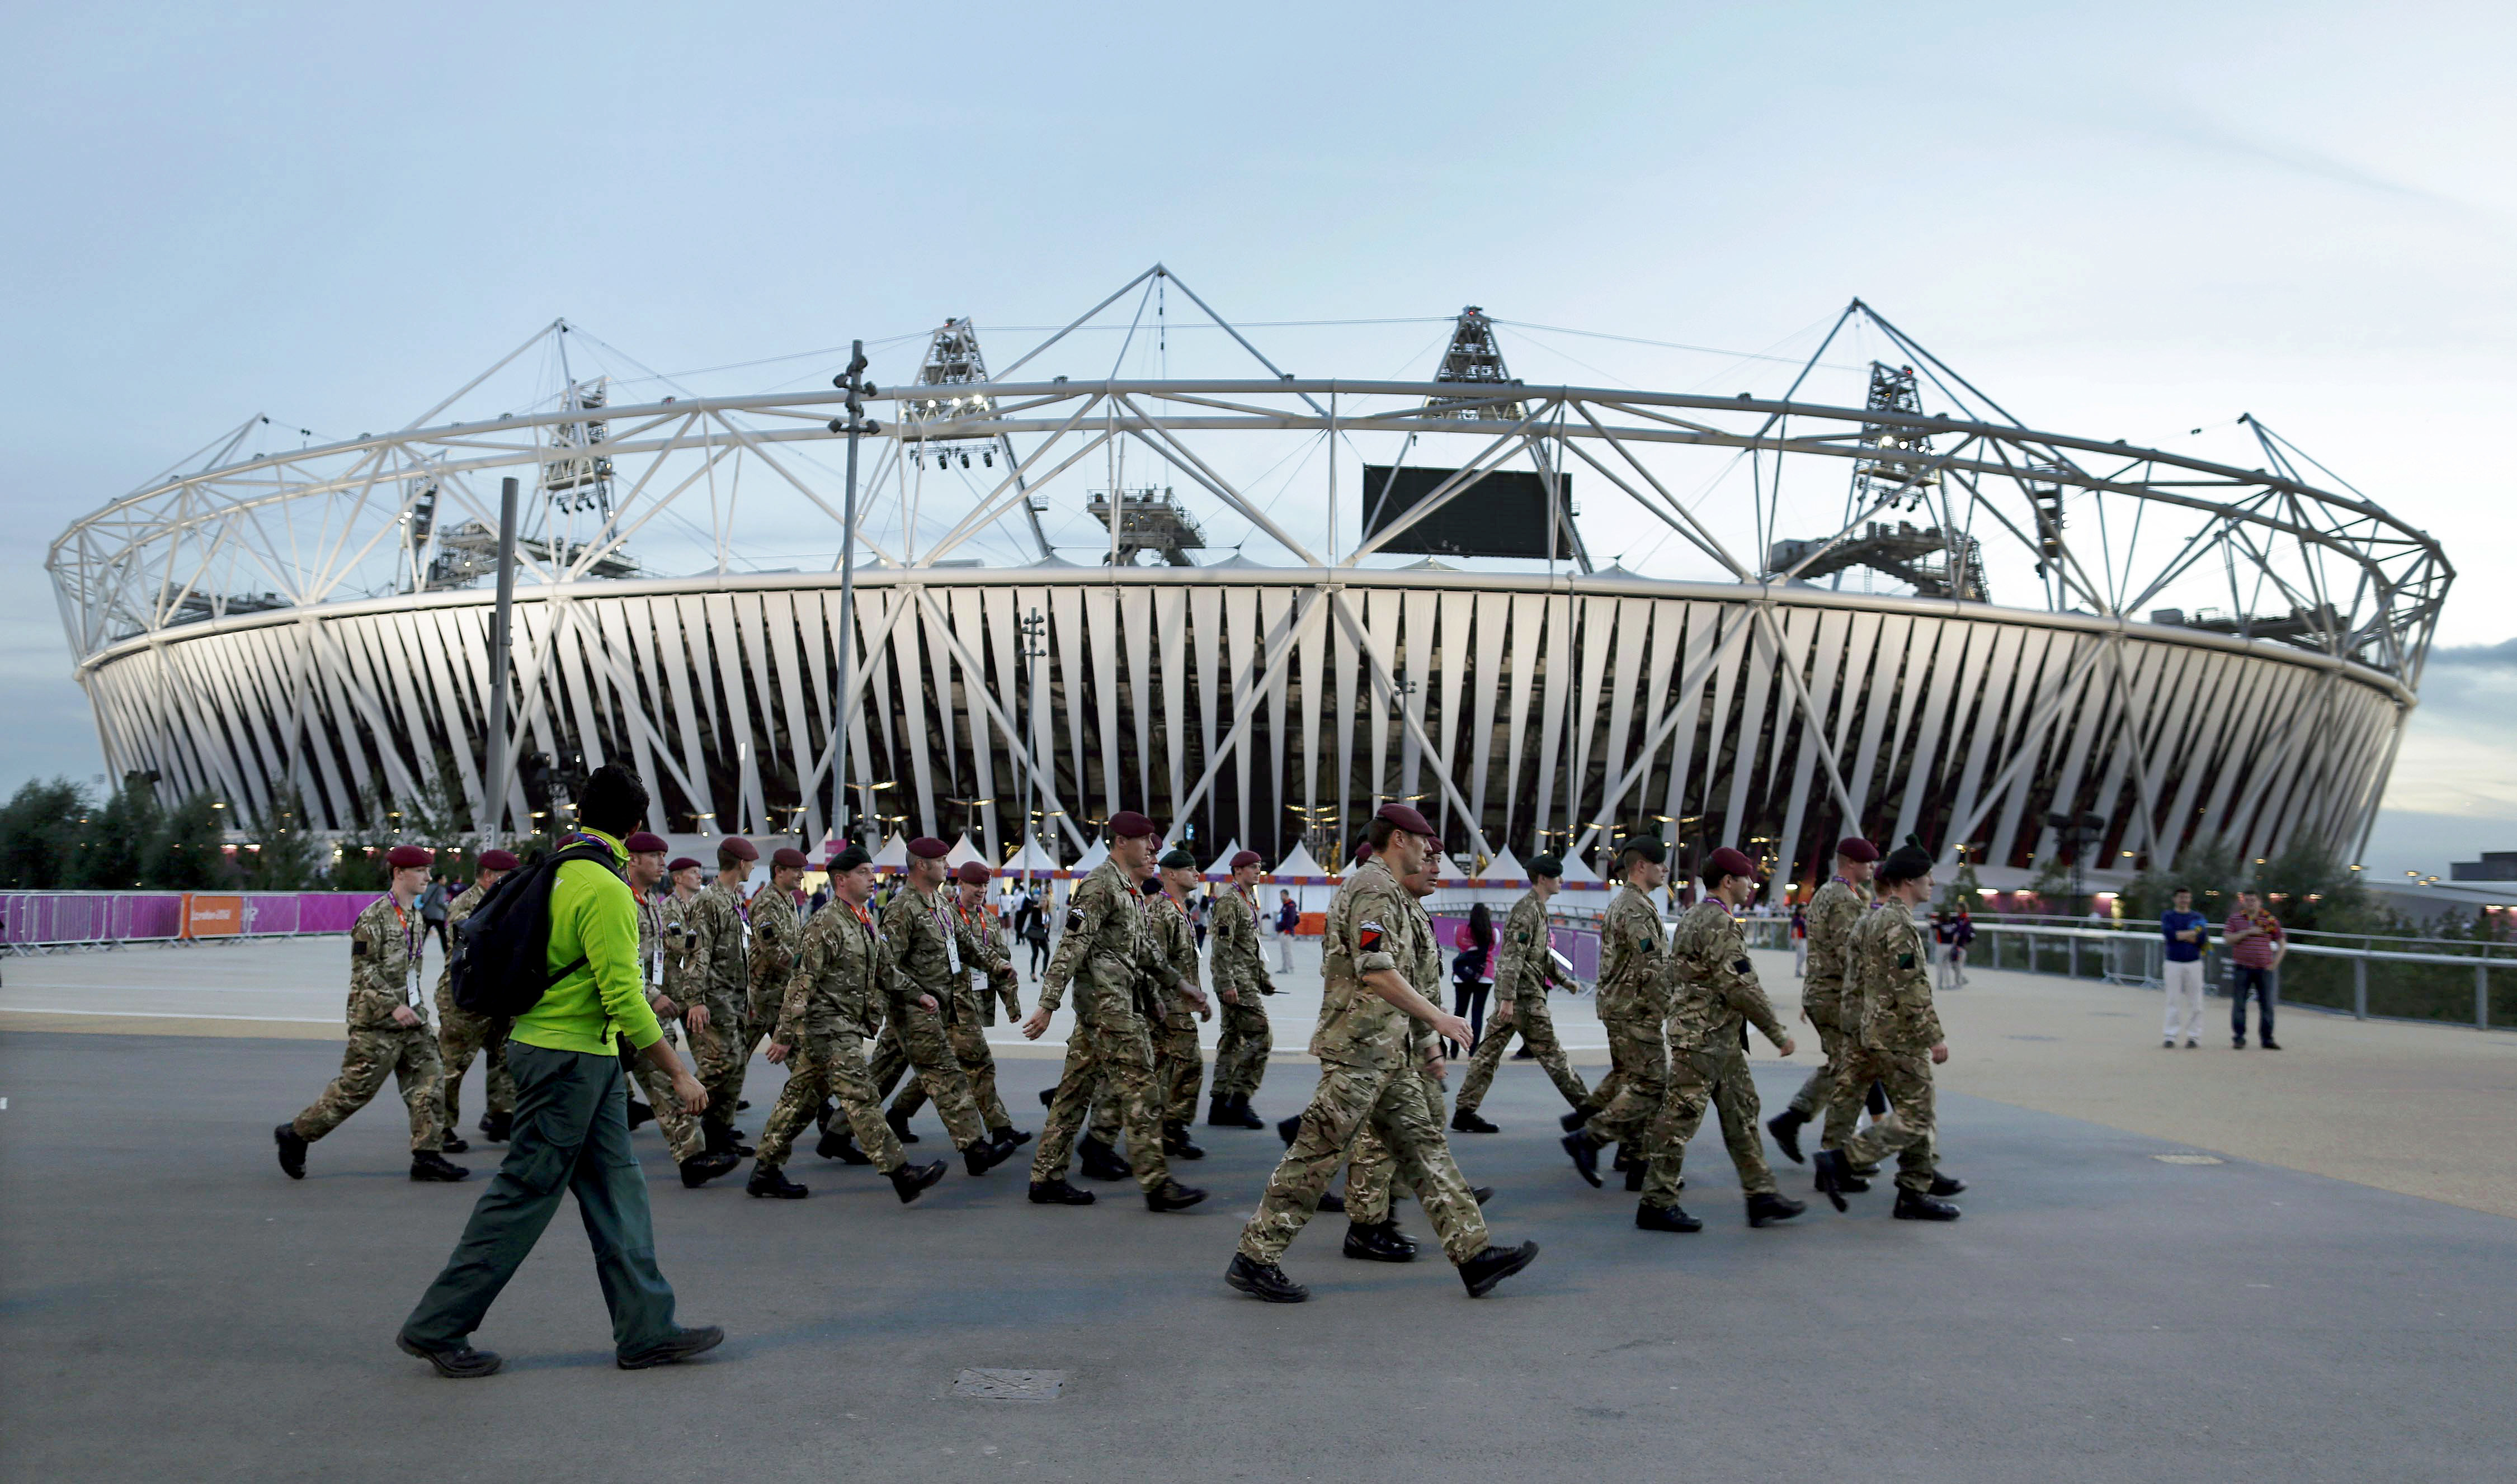 FILE- In this Aug. 12, 2012, file photo, ,embers of the British military march by Olympic Stadium before the Closing Ceremony of the 2012 Summer Olympics in London. The players' association says Major League Baseball has given up plans to play regular-sea